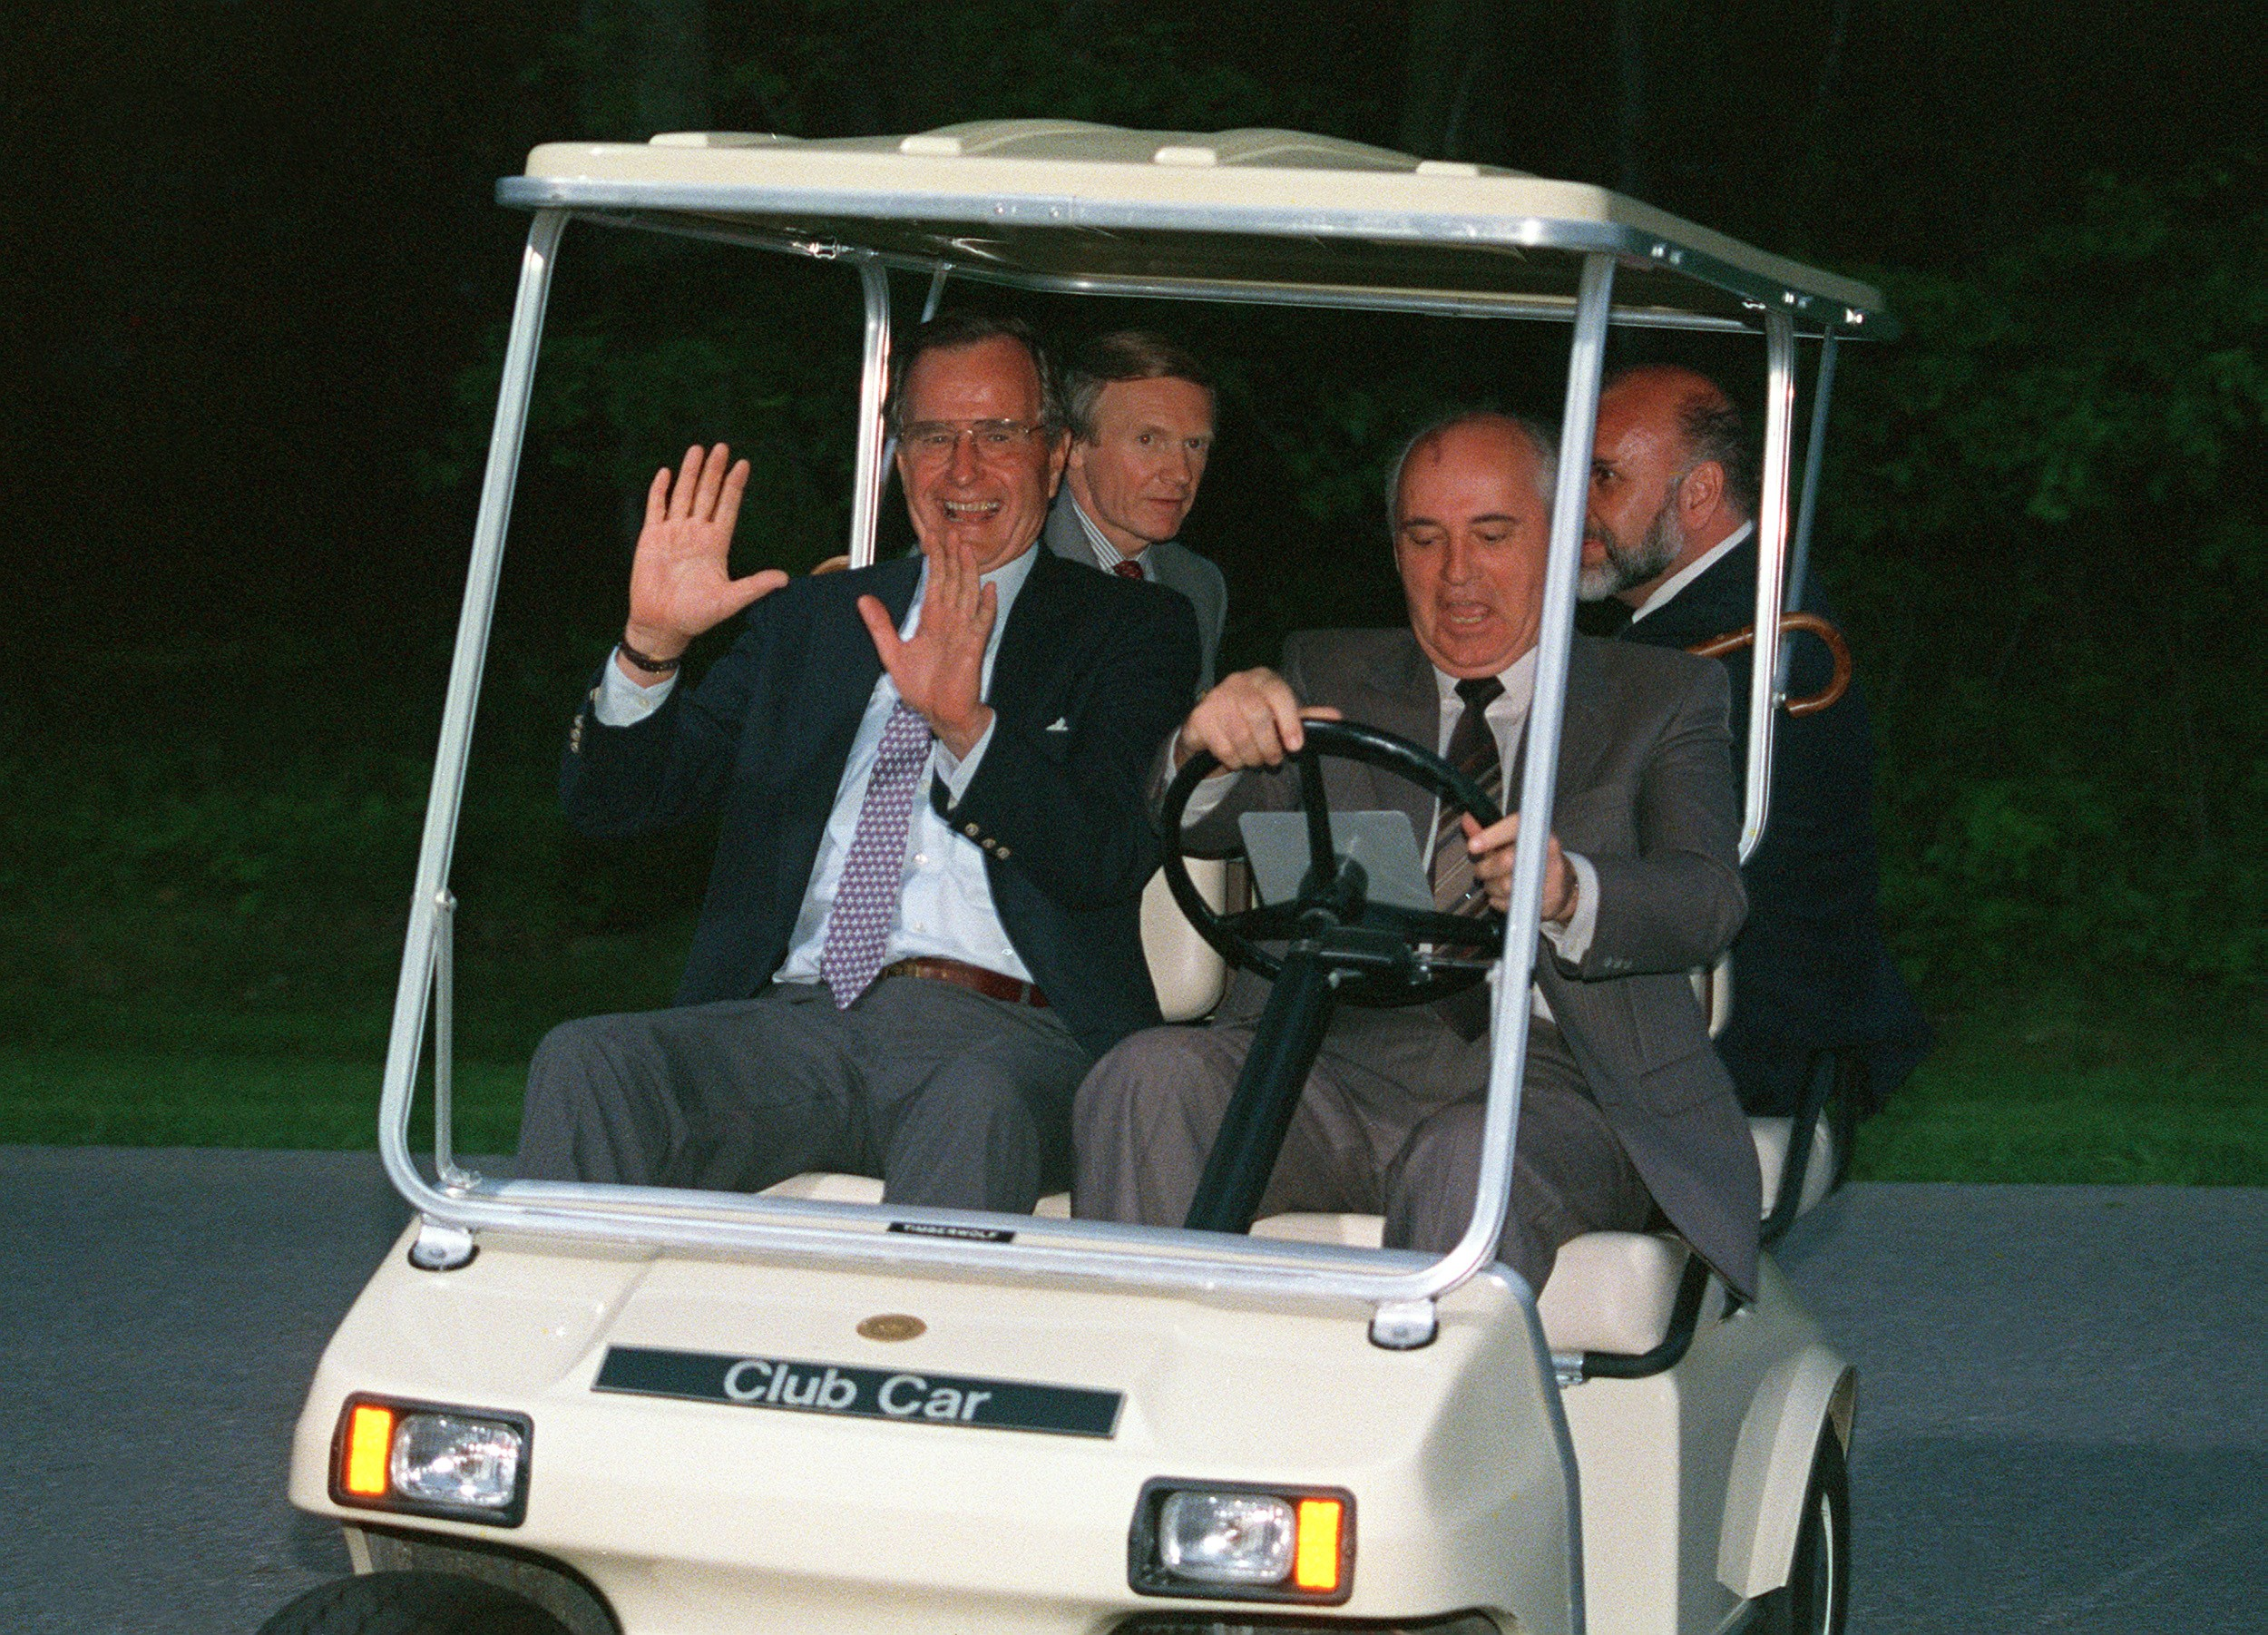 Soviet President Mikhail Gorbachev (R) takes US President George Bush (L) for a ride in President Bush's golf cart 02 June 1990. The two leaders were on their way back to their helicopter for the flight back to Washington after a day at the presidential retreat in Camp David. (Photo credit should read JEROME DELAY/AFP/Getty Images)